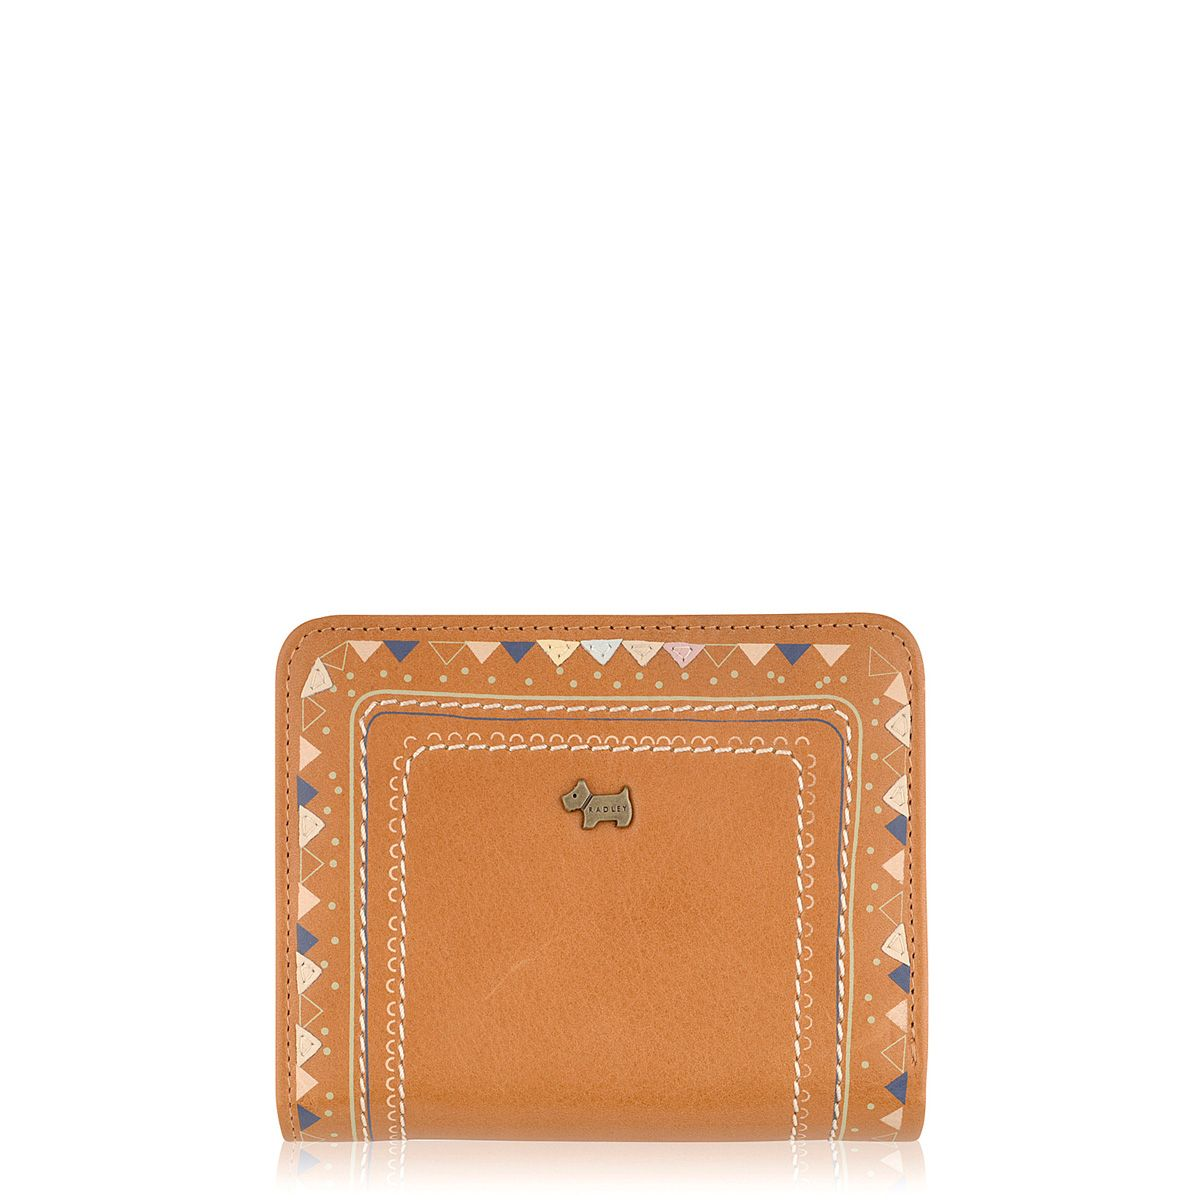 Tan medium flapover purse